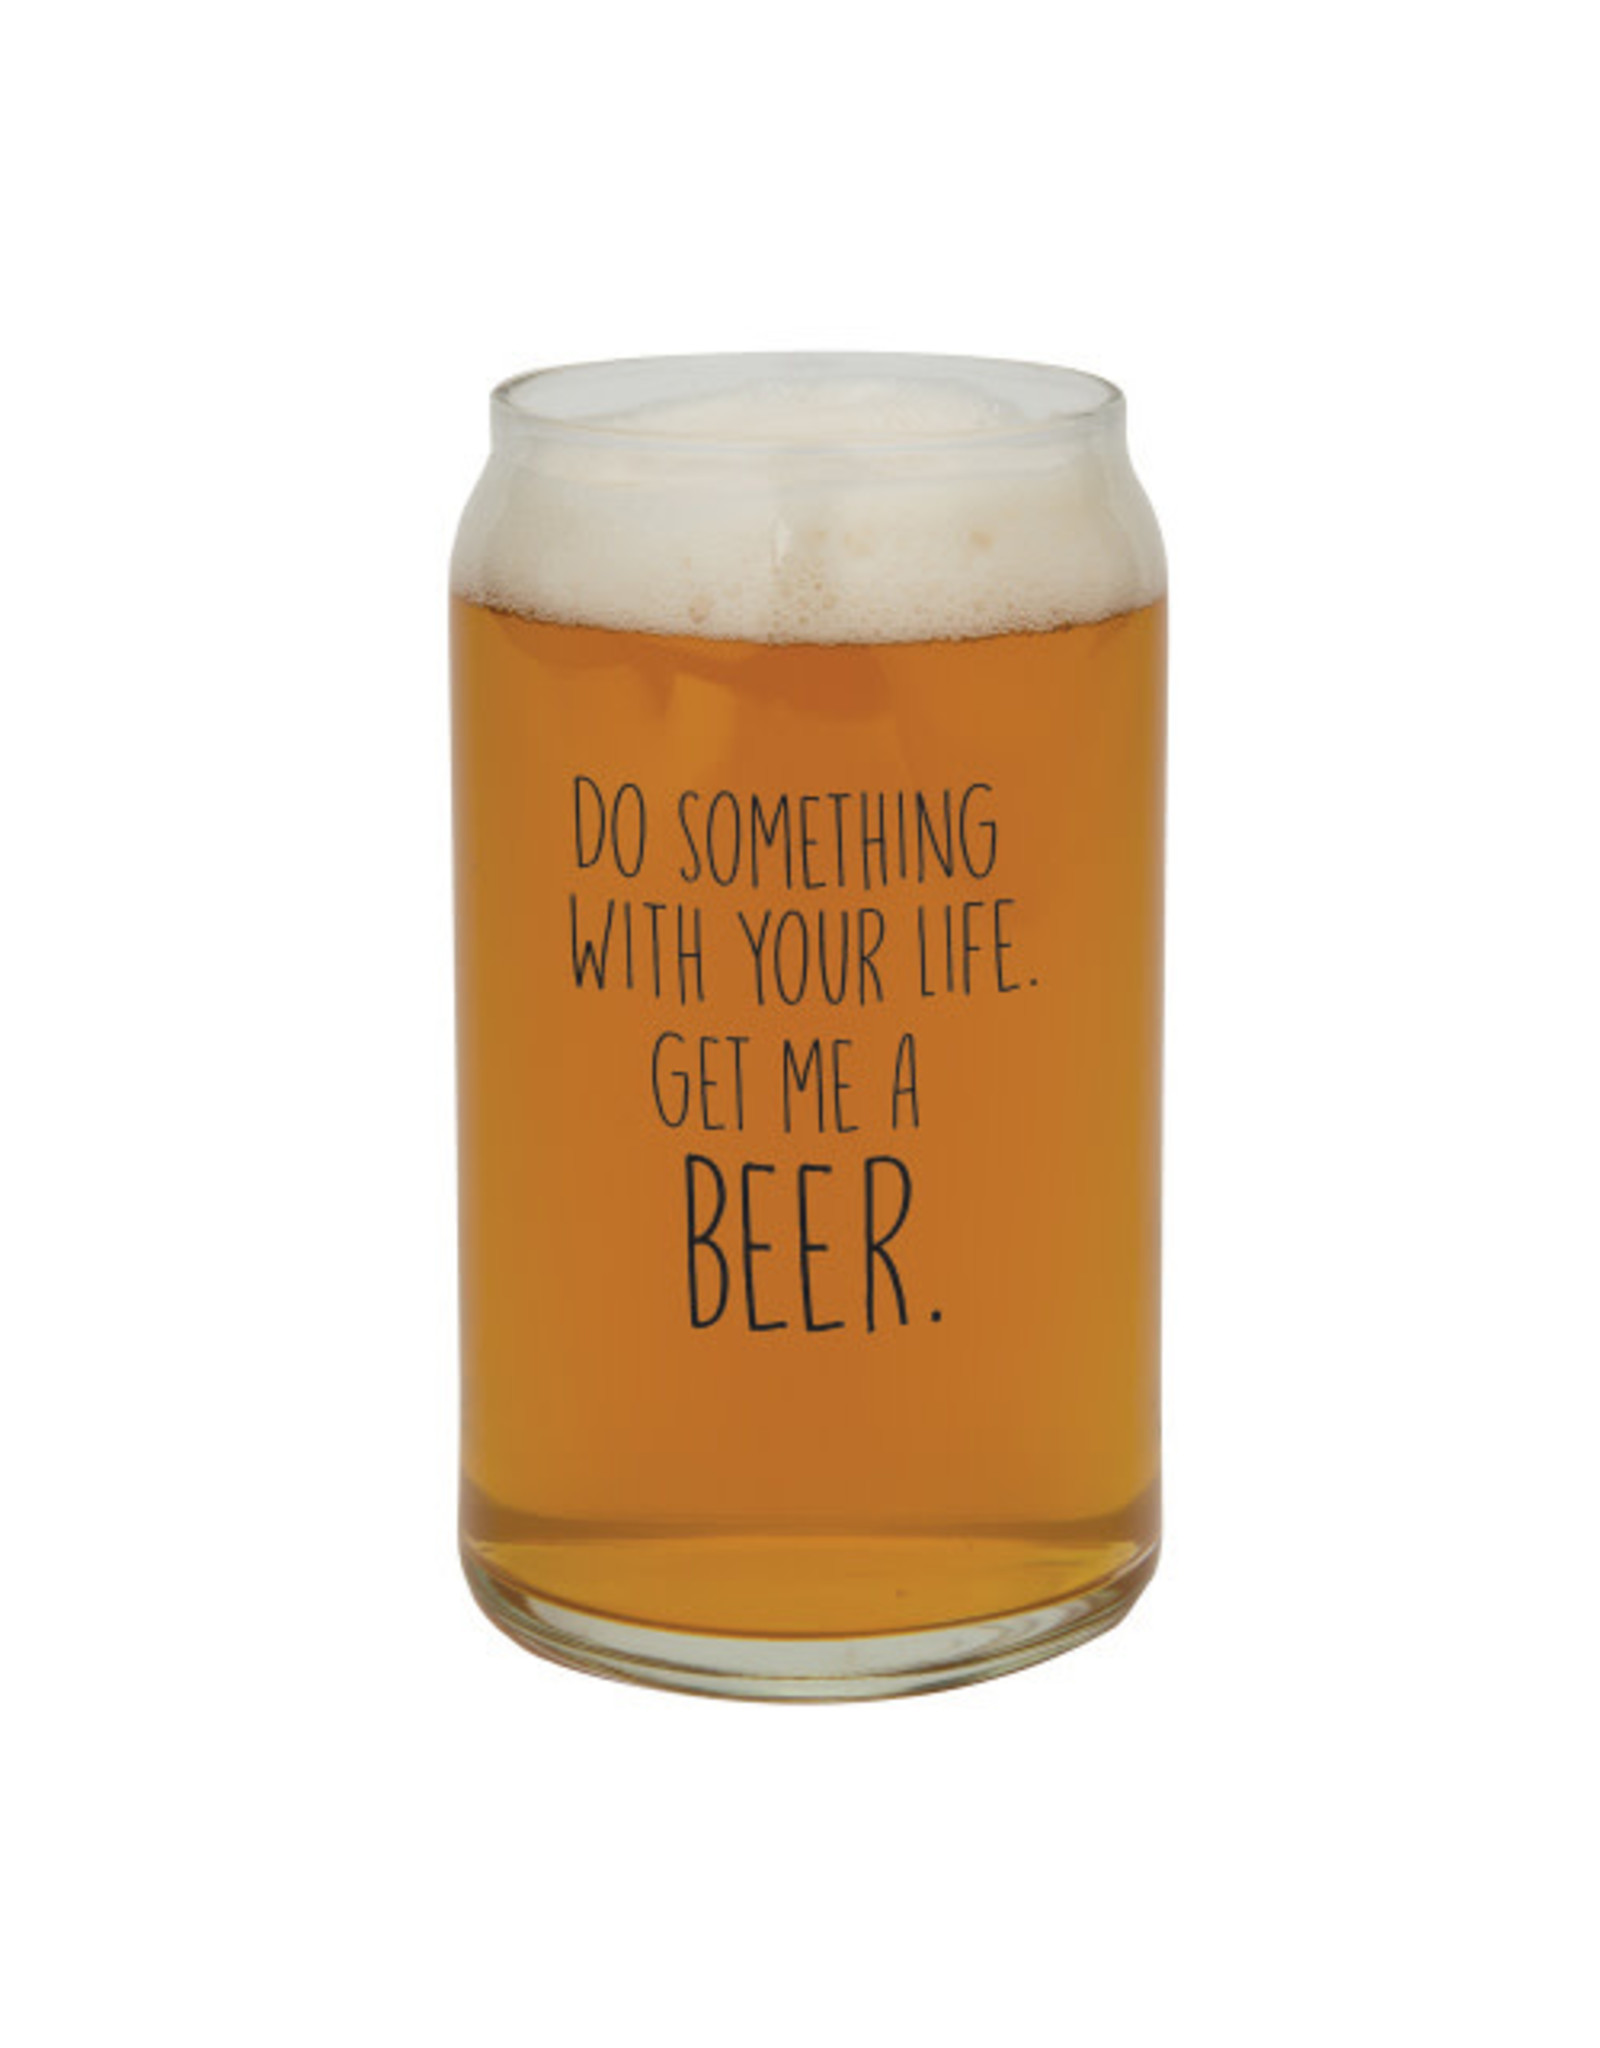 Creative Brands Beer Glass, 16oz, Do Something With Your Life, Get Me A Beer